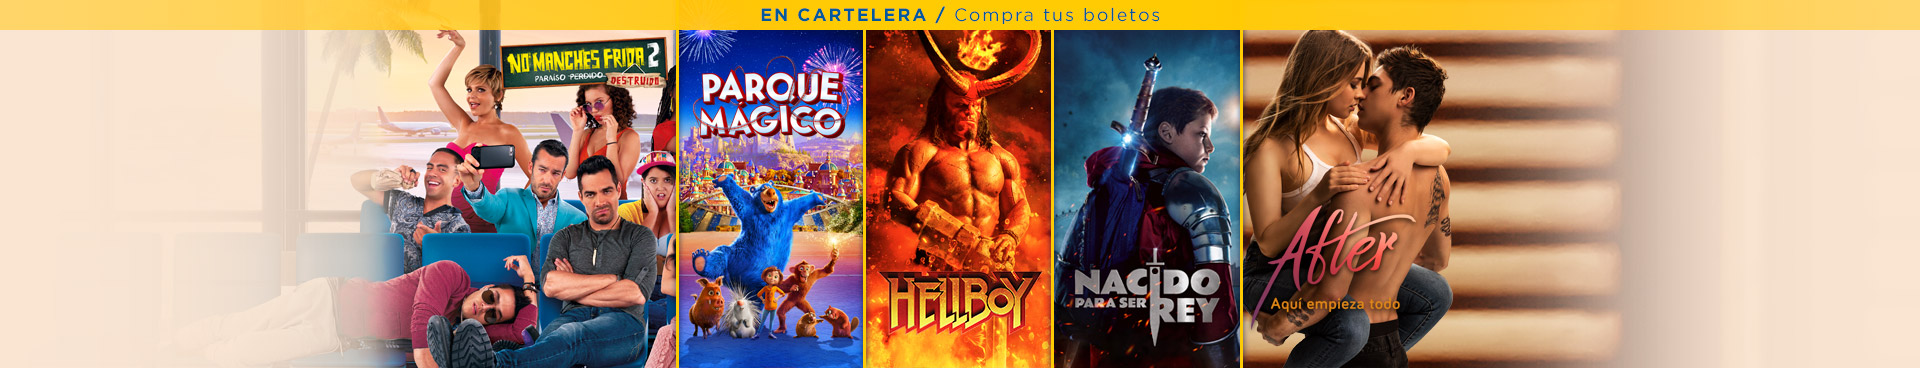 En cartelera: No Manches Frida 2 / Parque Mágico / Hellboy / Nacido para ser Rey / After